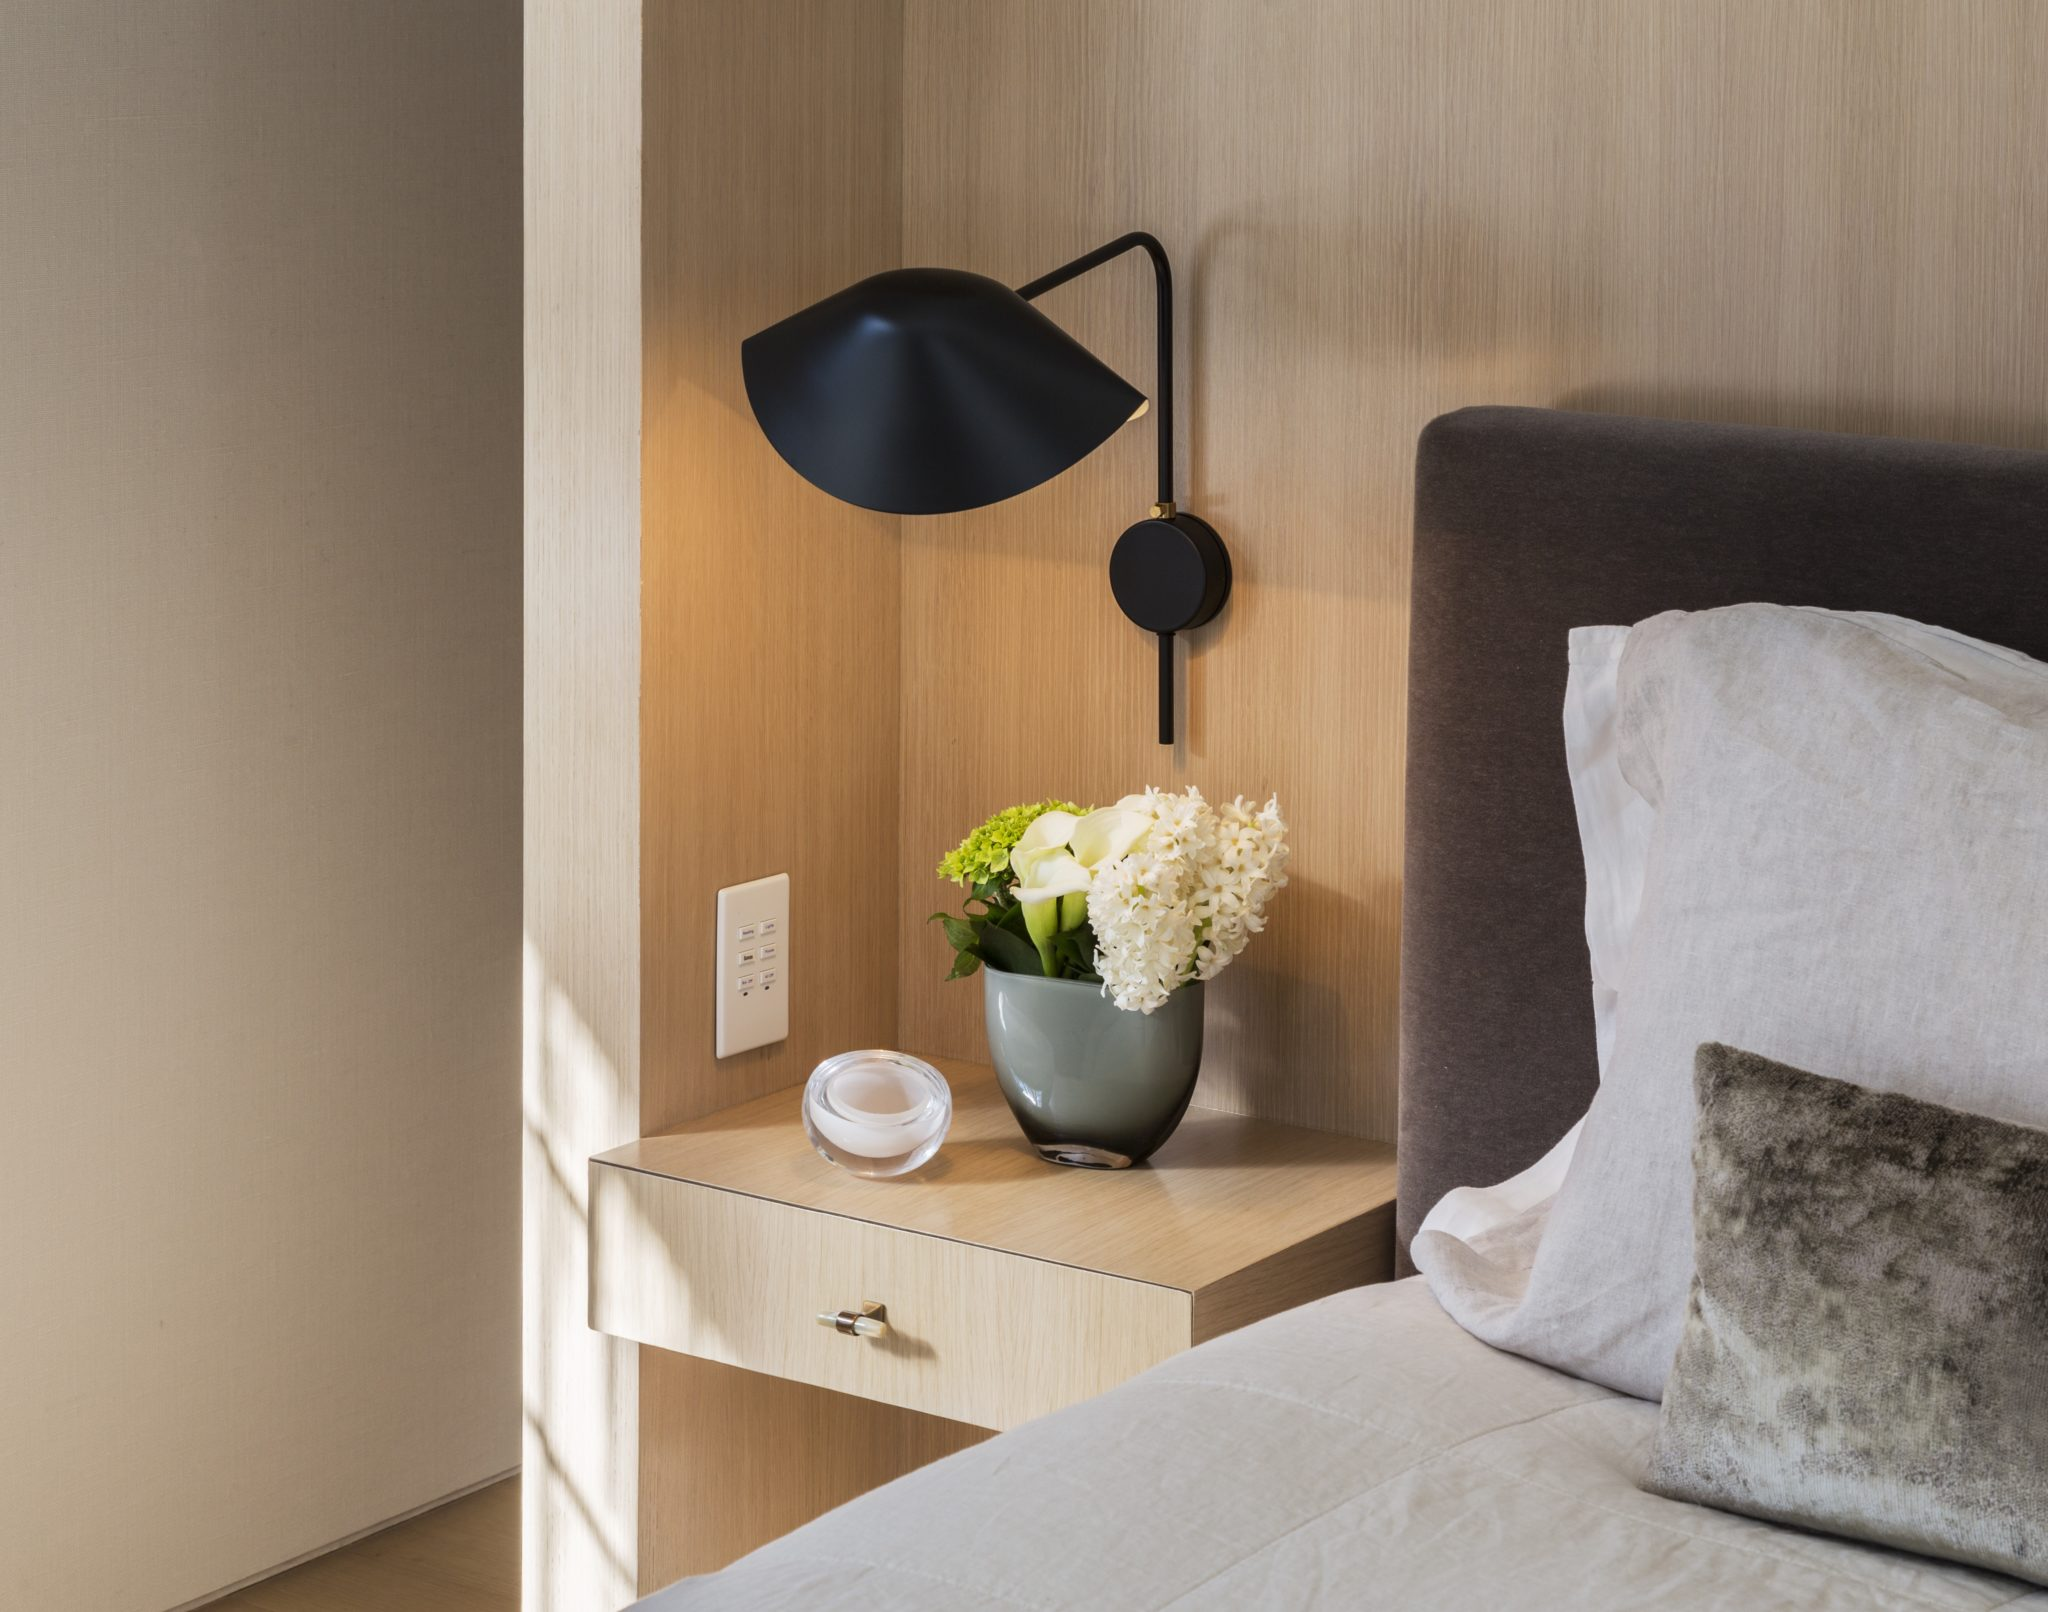 Serge Mouille sconces above the custom nightstands by Monica Fried Design